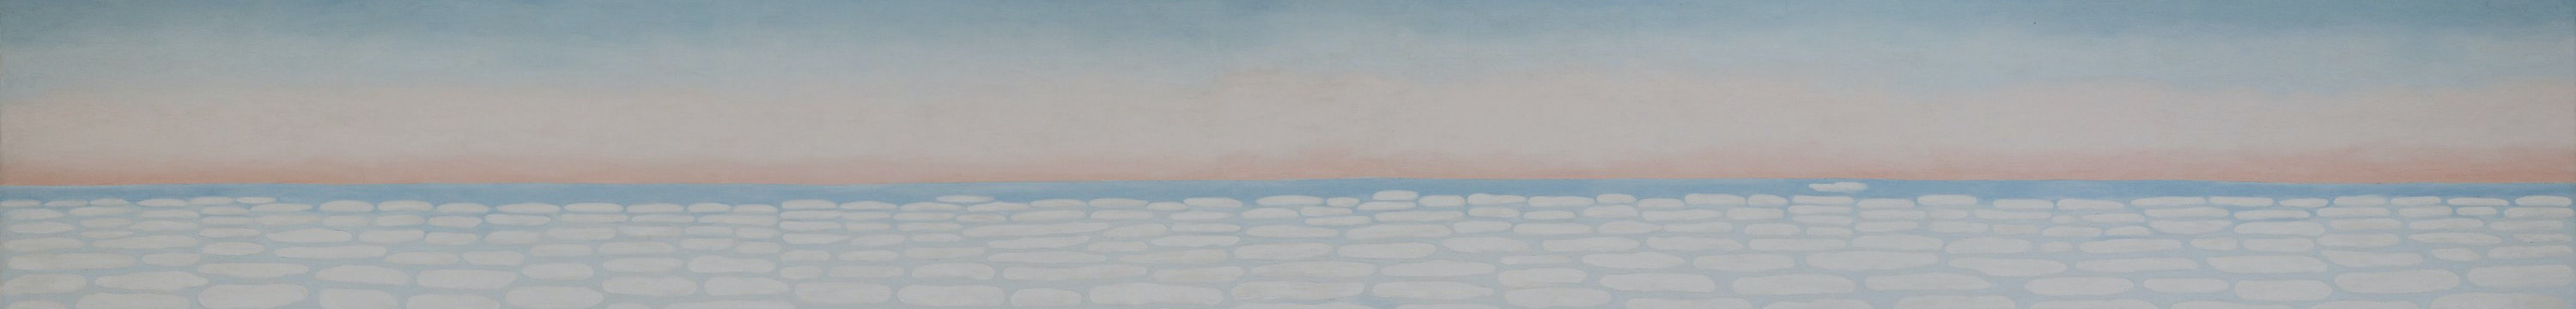 Detail image of pink and blue sunset over many white clouds, 1983.821